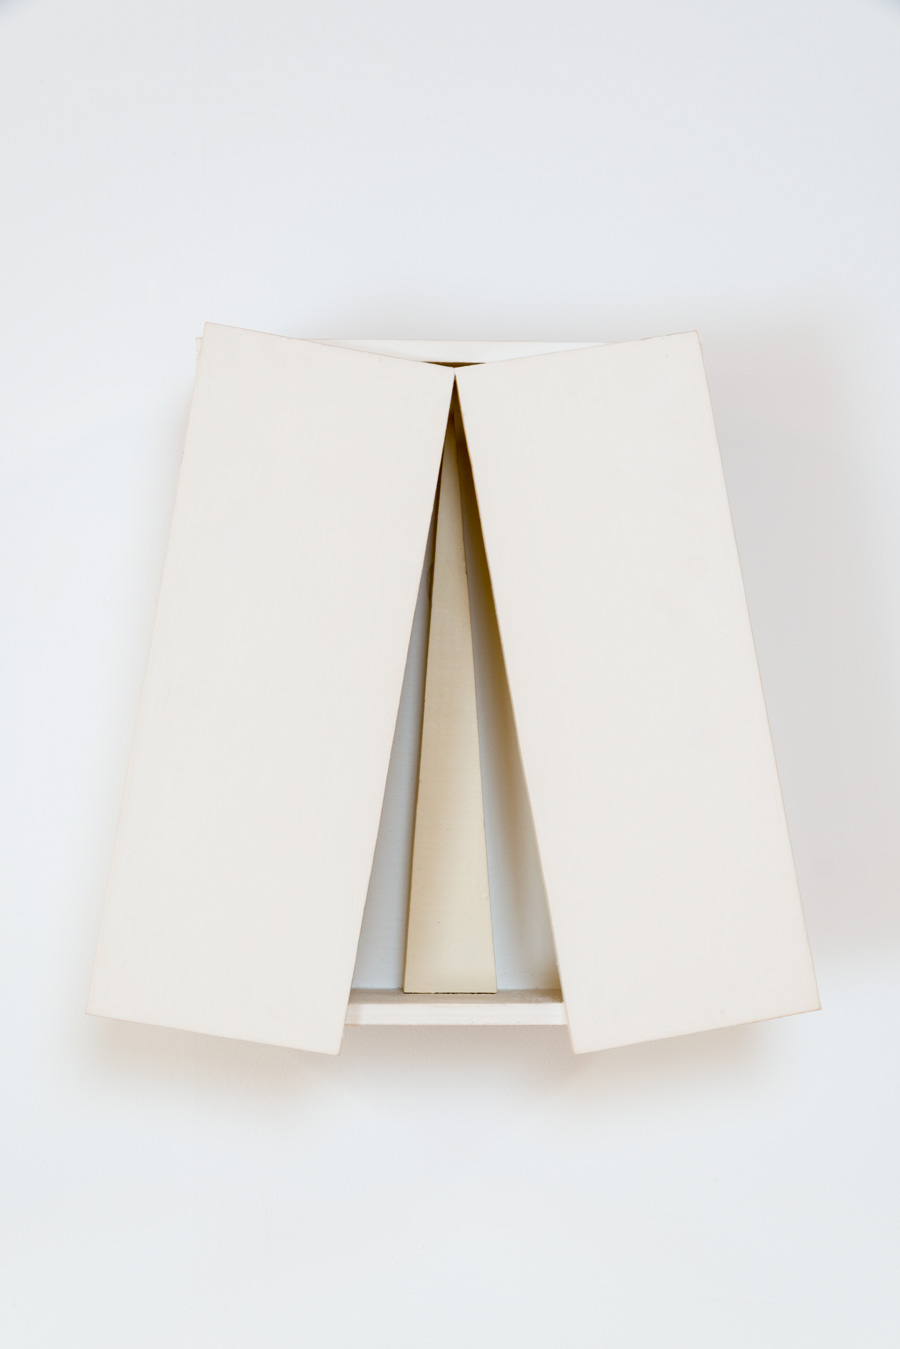 Territory of Latent Lights , 2008 潜光領 ( Senkōryō ) Plywood, wood, paint 15 1/8 x 14 15/16 x 5 1/8 inches 38.5 x 38 x 13 cm